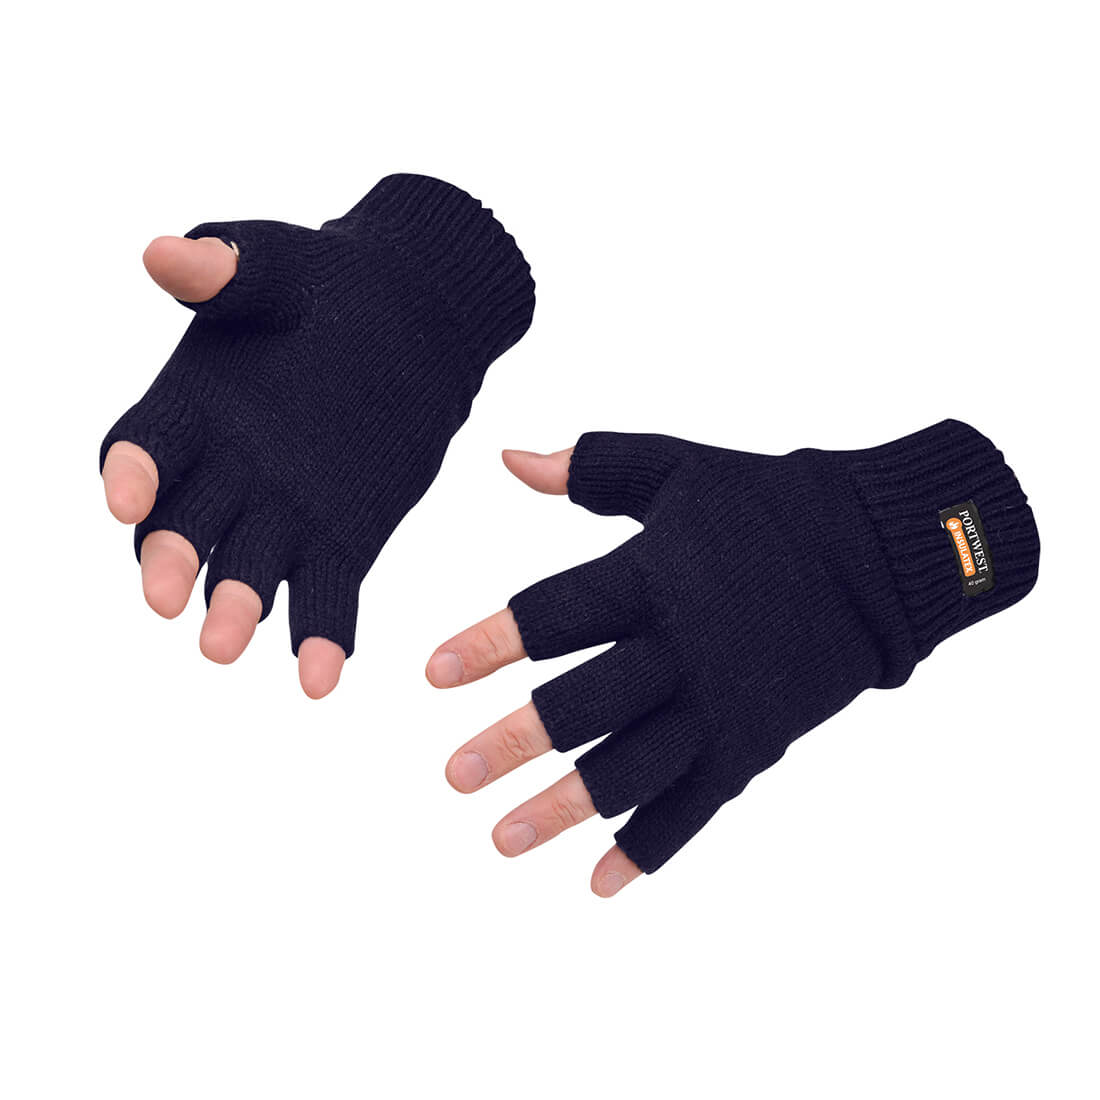 Image of Portwest Fingerless Insulatex Lined Knit Gloves Navy One Size